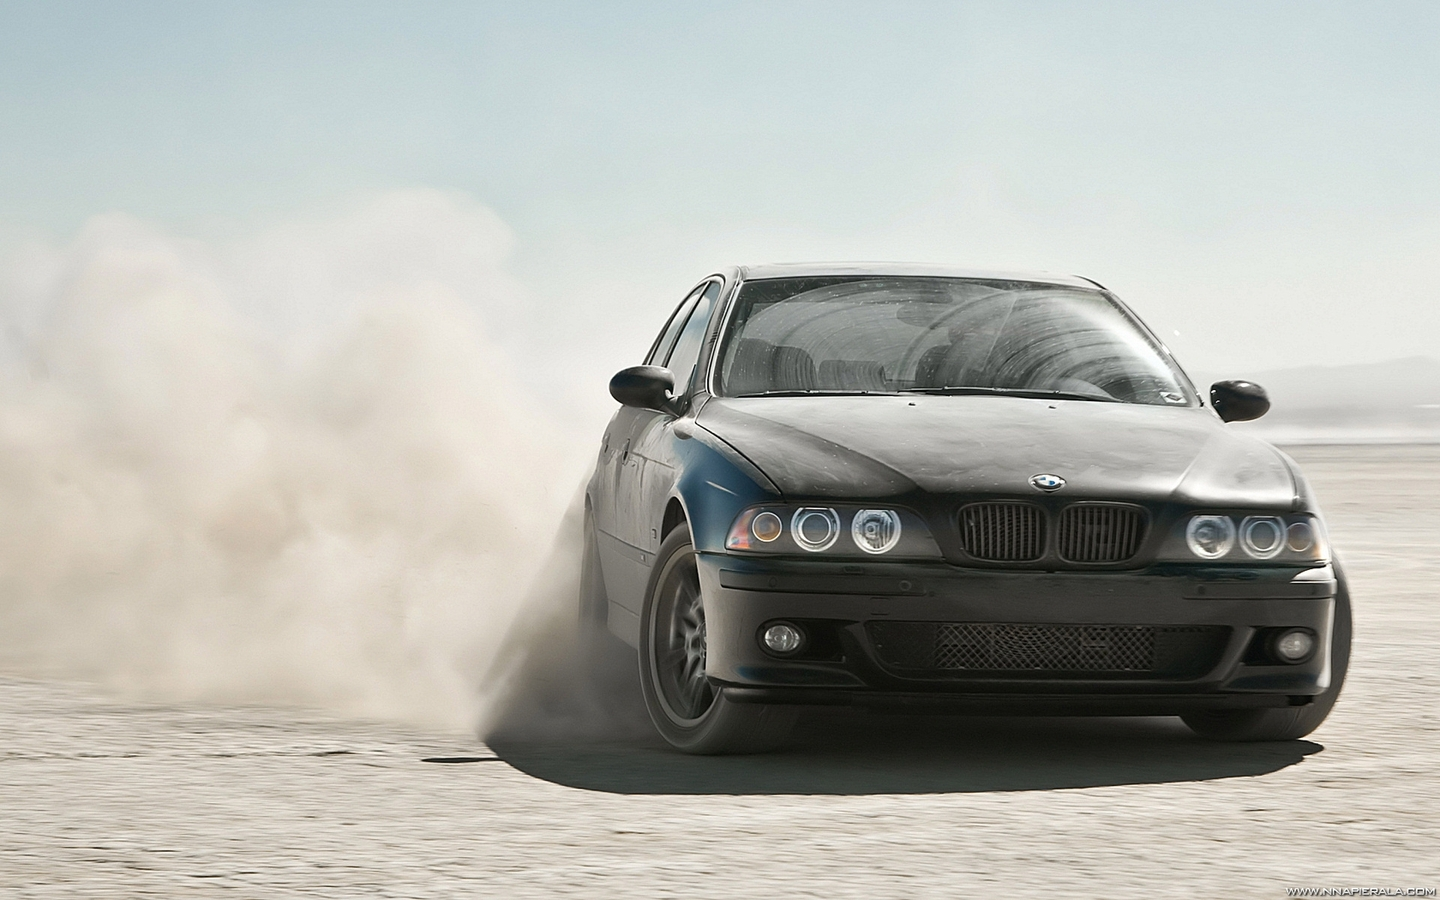 BMW Alpina Desert Drifting HD Wallpaper | Home of Wallpapers